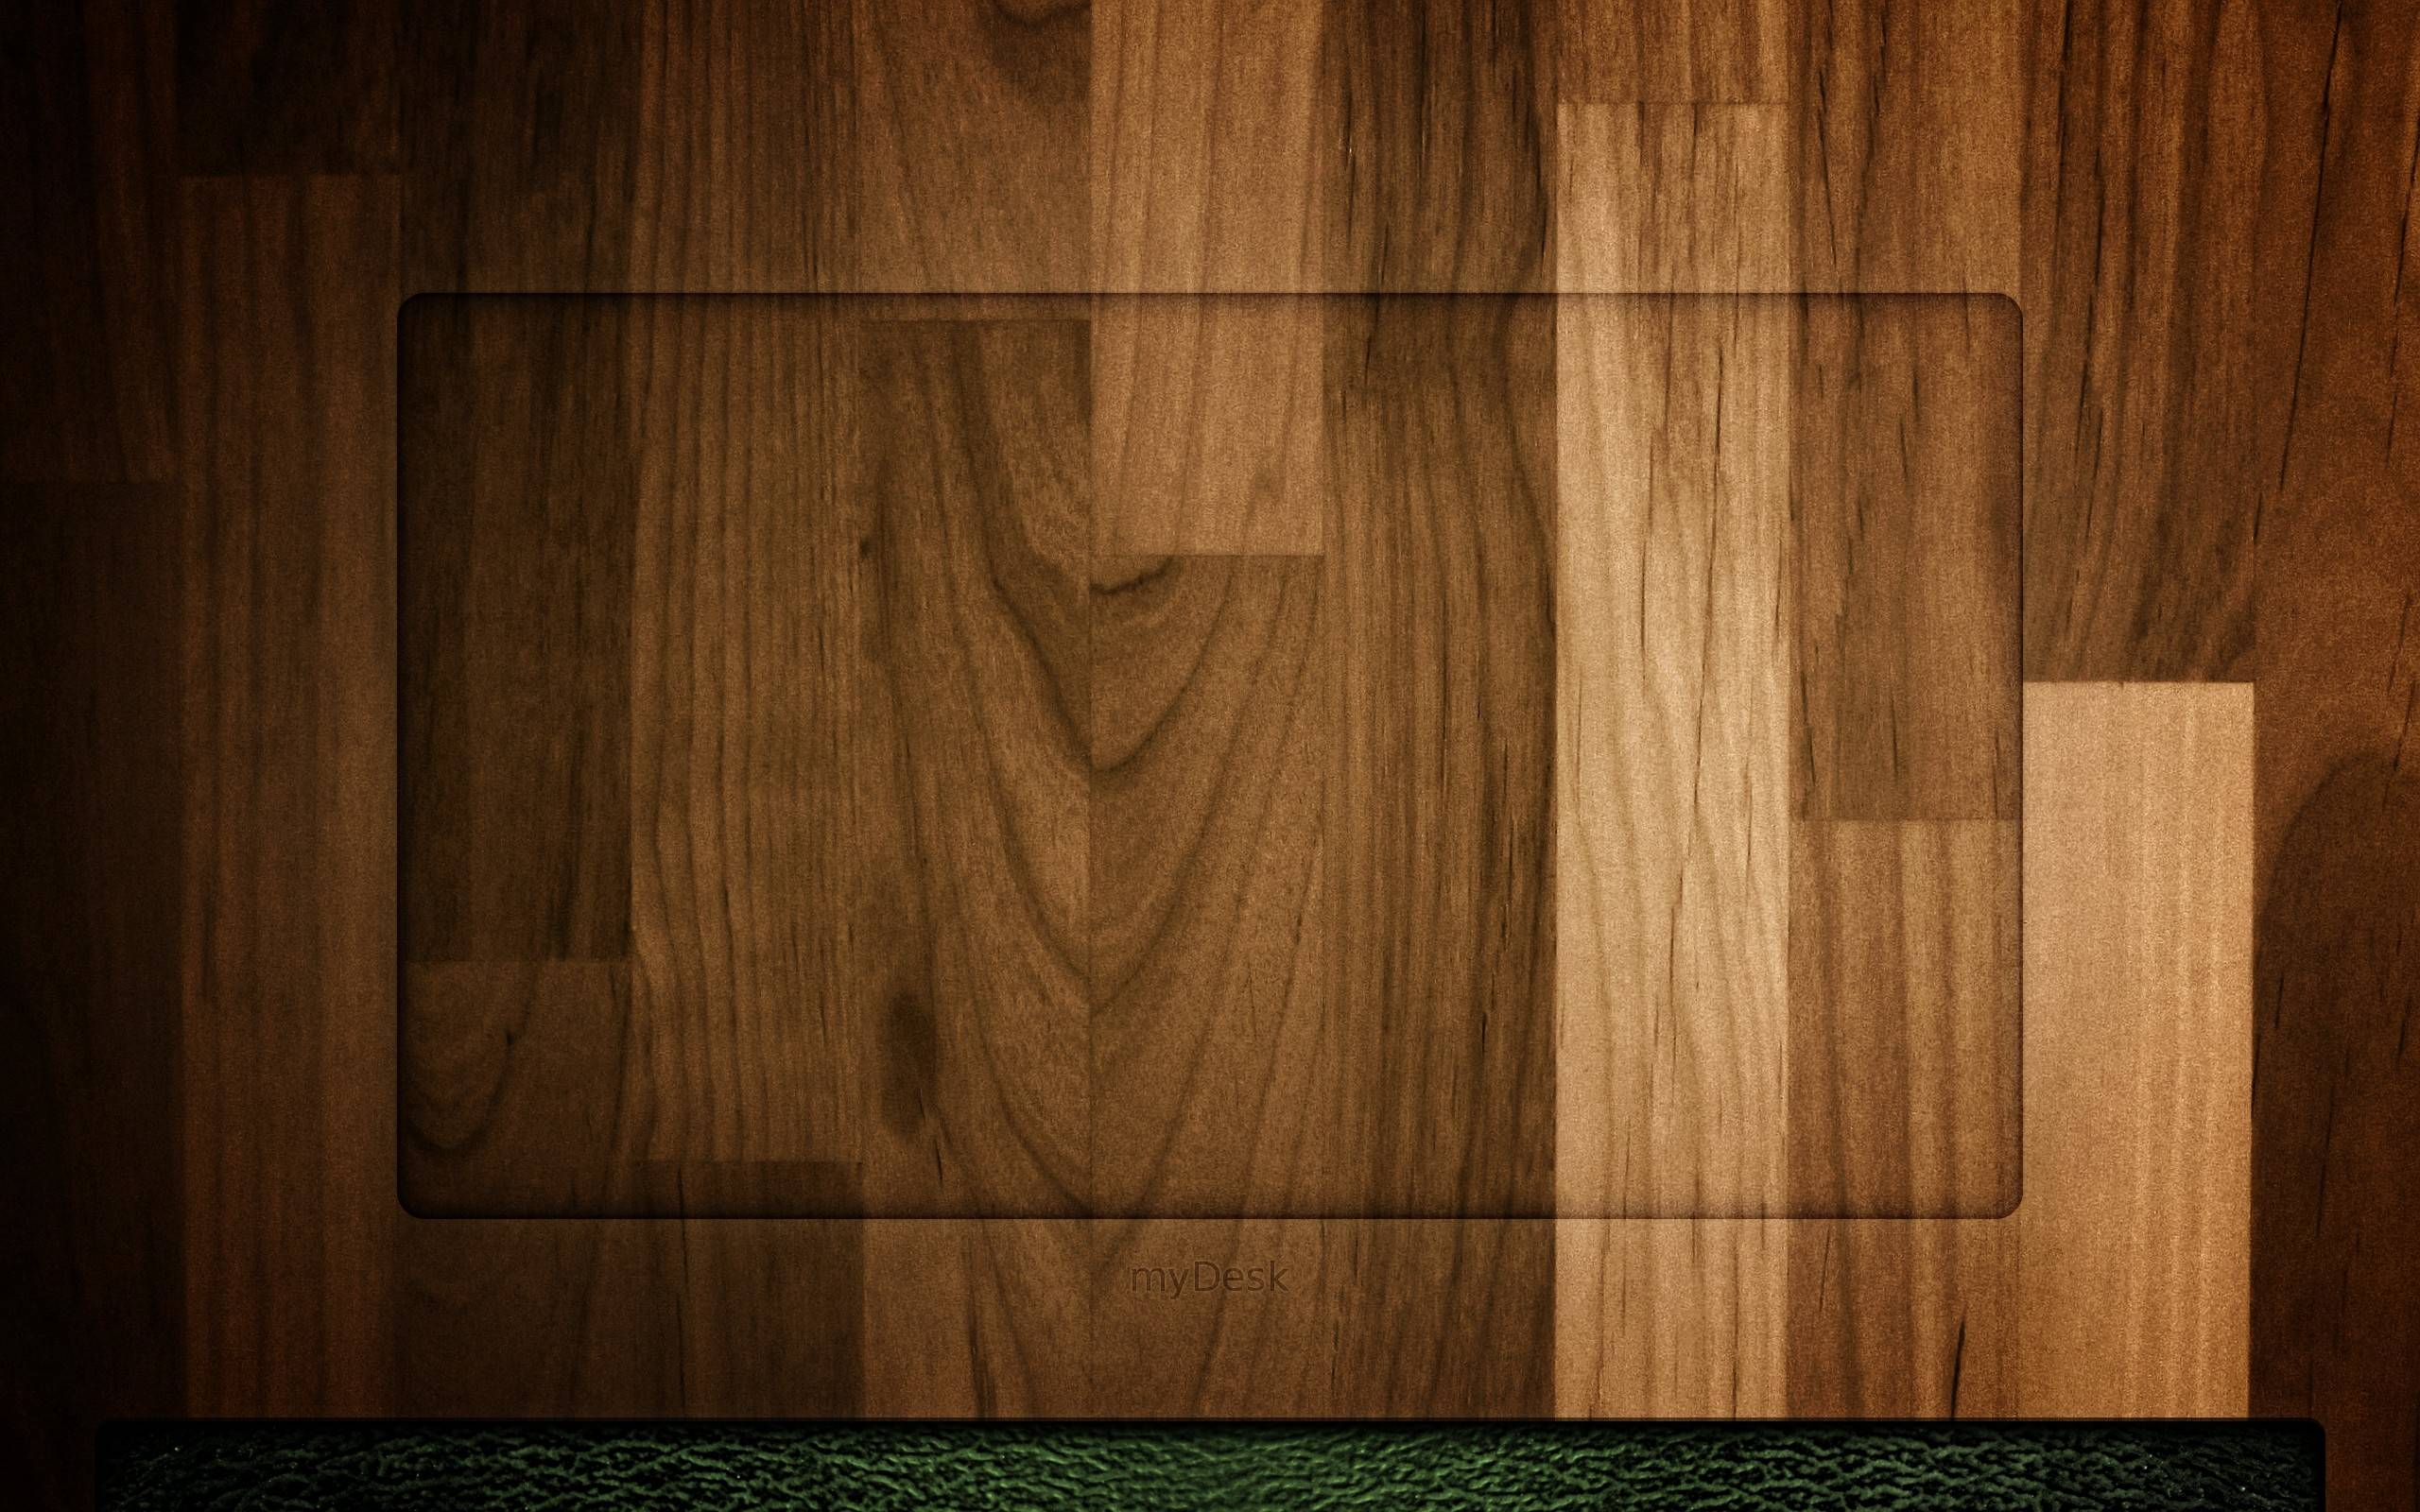 minimalist desktop wallpaper wood - photo #28